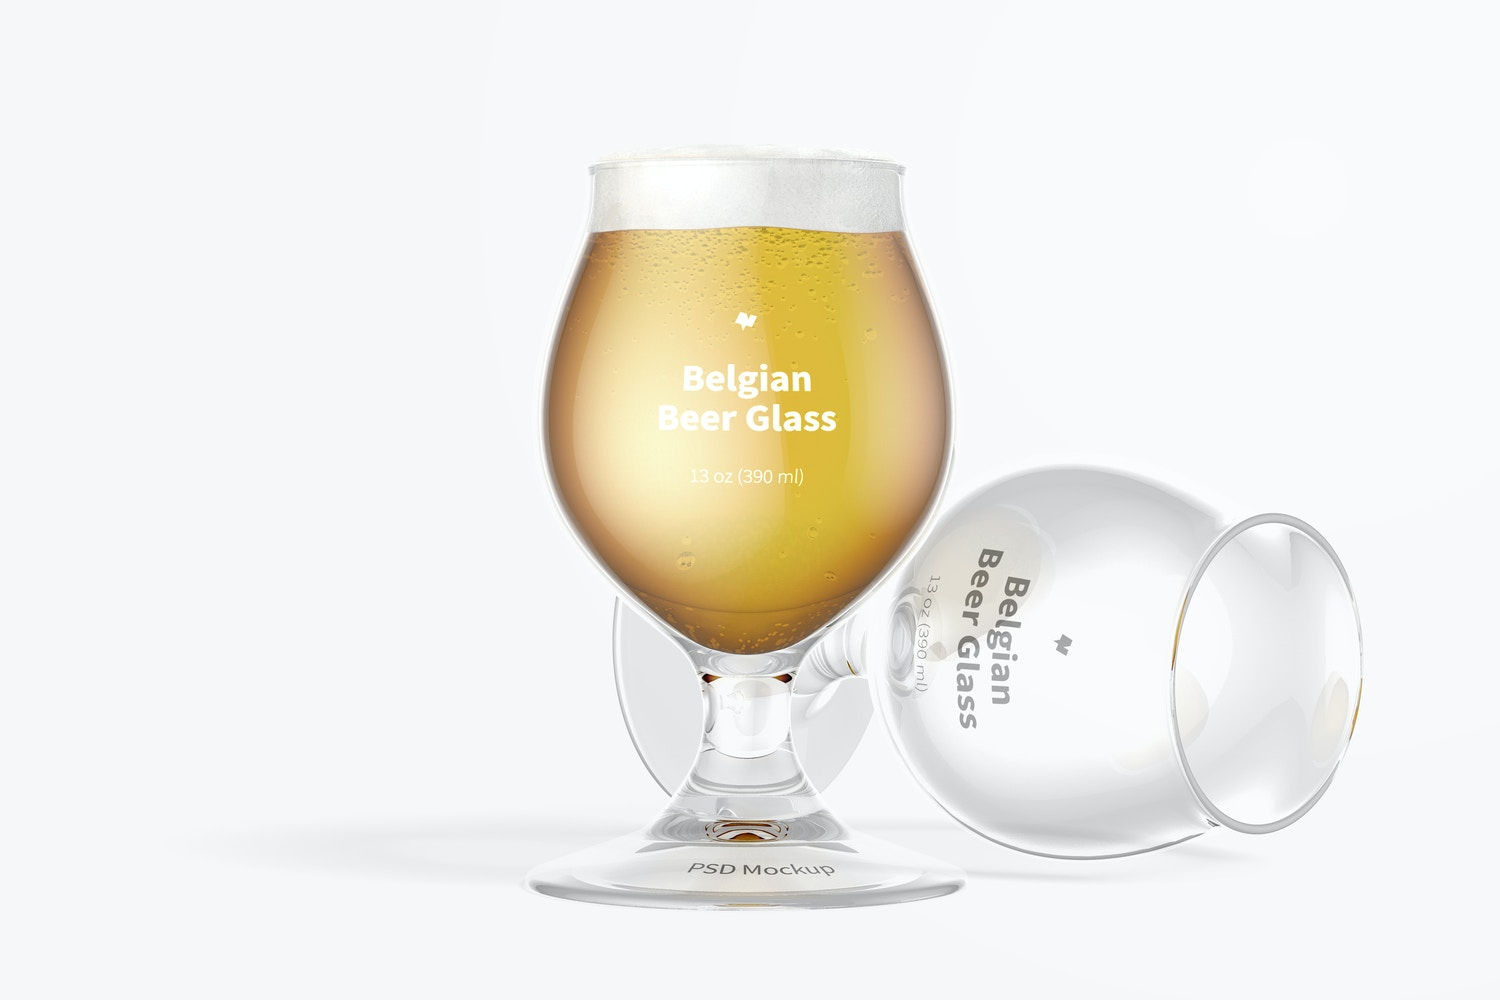 13 oz Belgian Beer Glass Mockup, Standing and Dropped